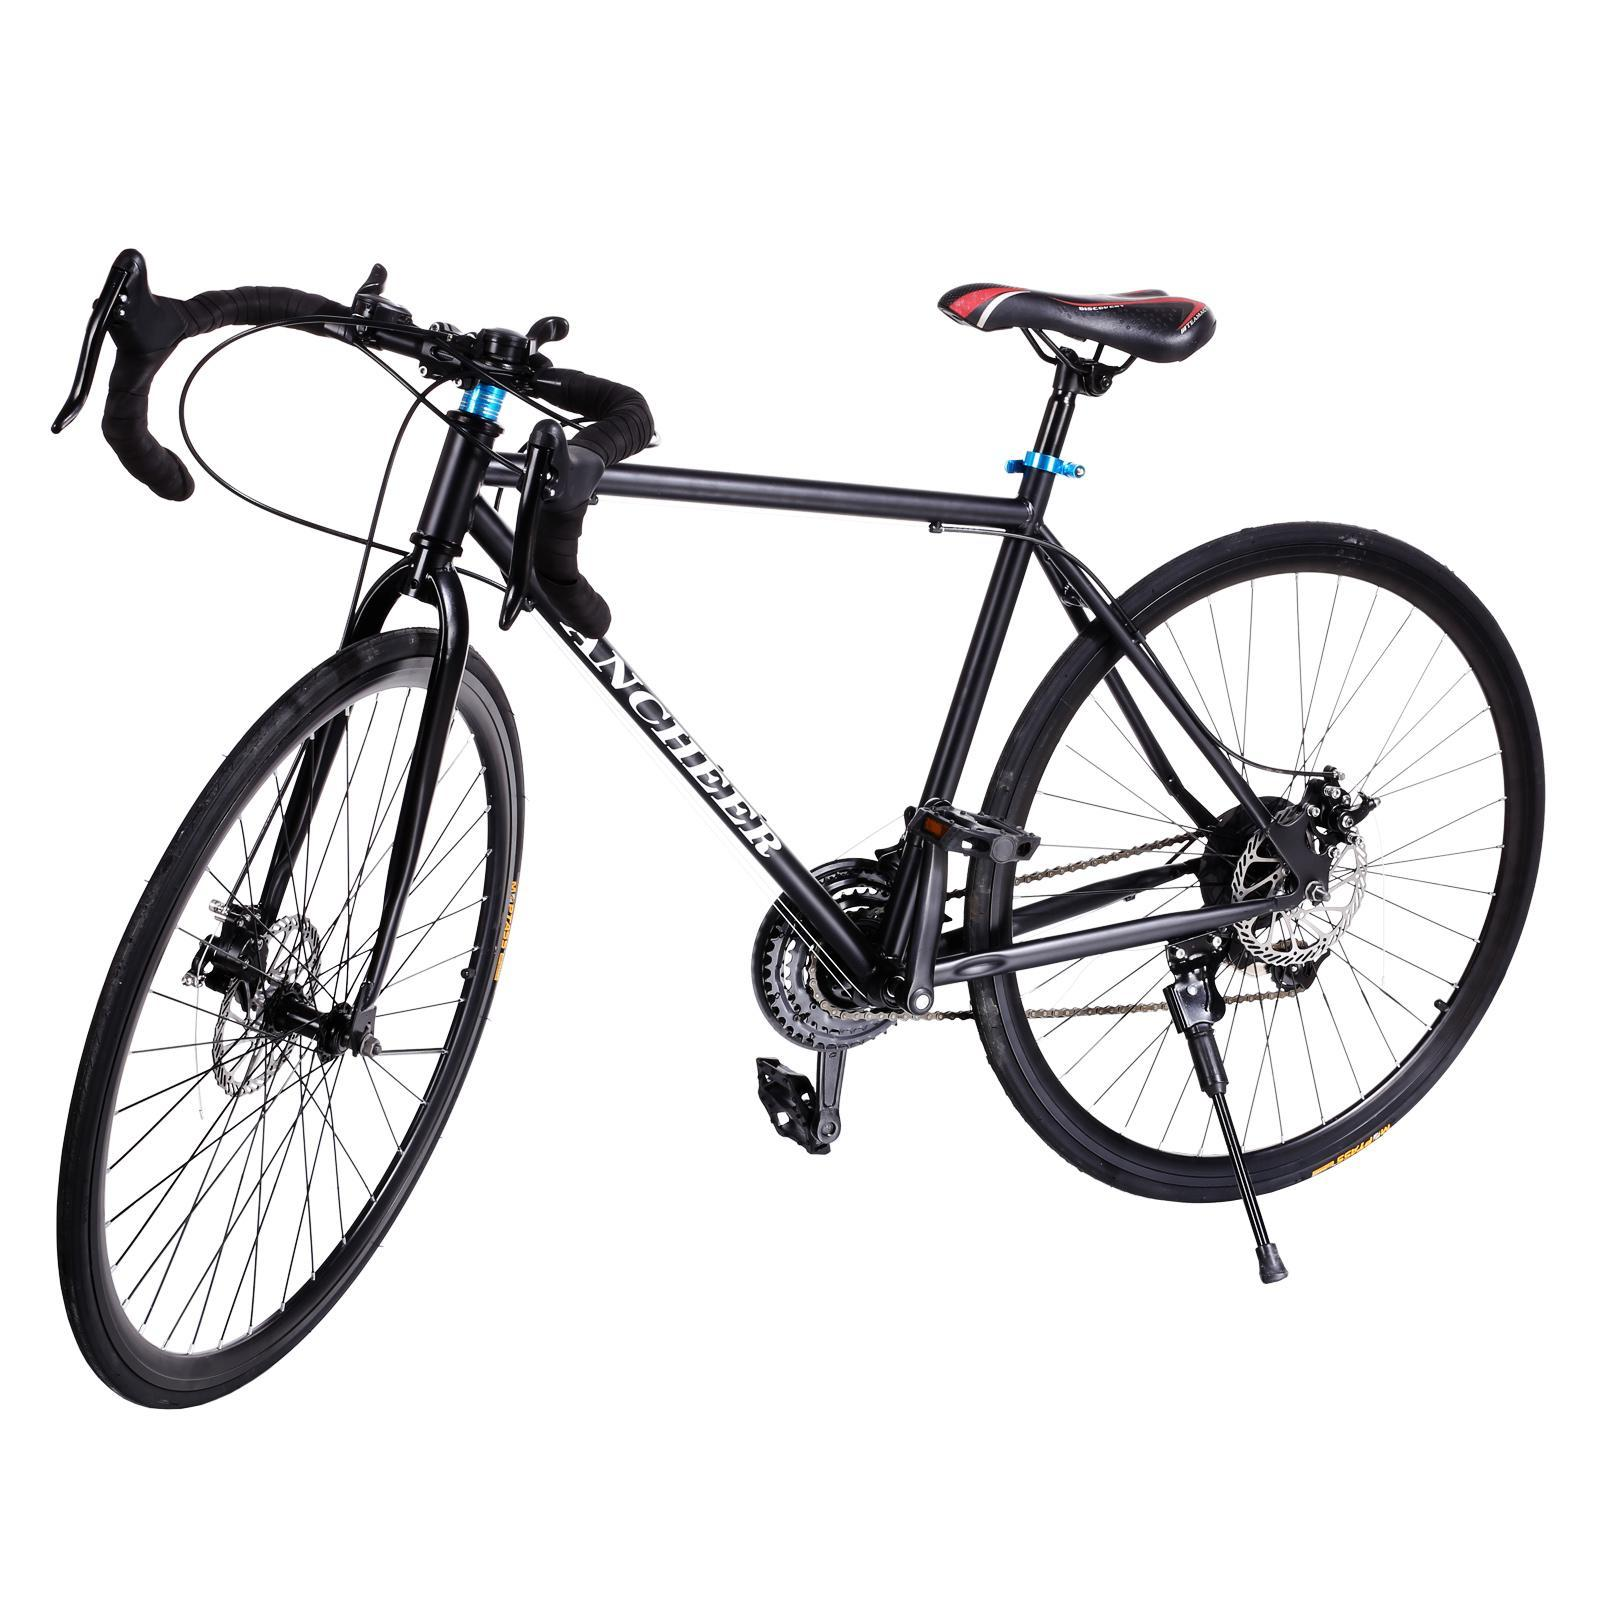 Margot Adult Teen Boys Racing Bikes, Fashion 700C Aluminum 21 Speed Road/Commuter Bike Racing Bicycle ,440lbs Capacity